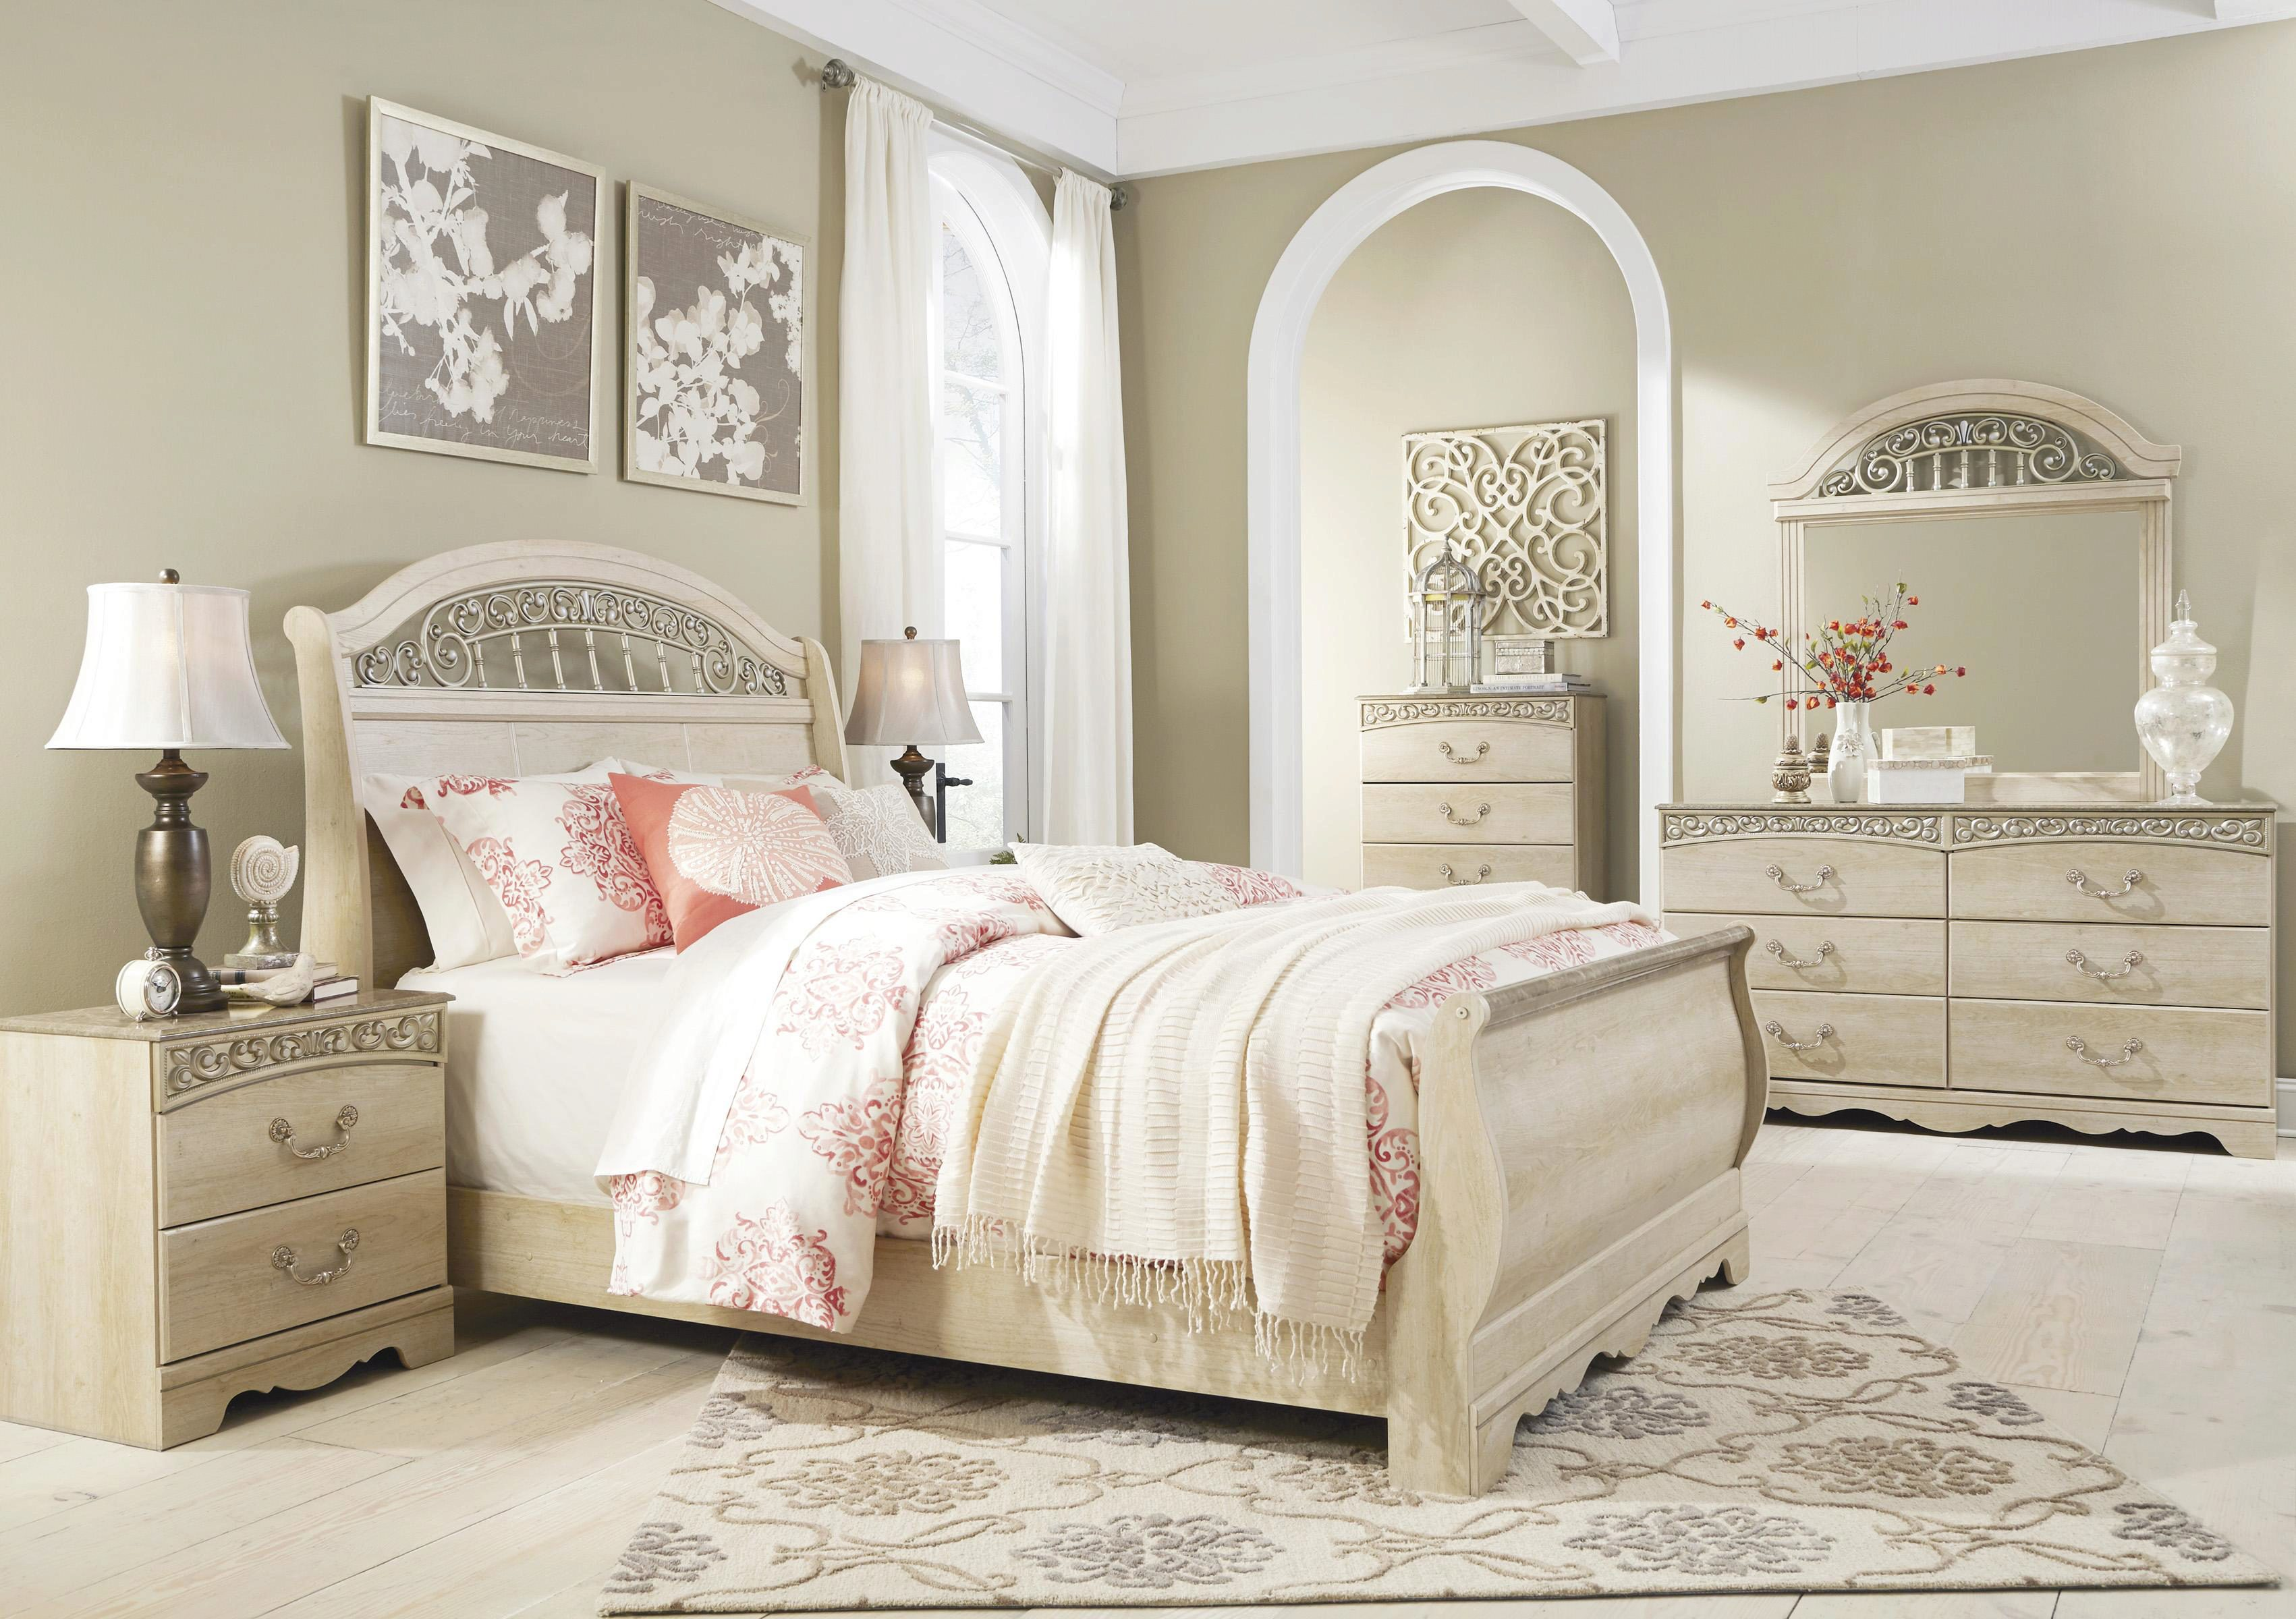 Ashley Catalina B196 Queen Size Sleigh Bedroom Set 5pcs In Antique White 3319 B196 77 74 96 92 46 31 36